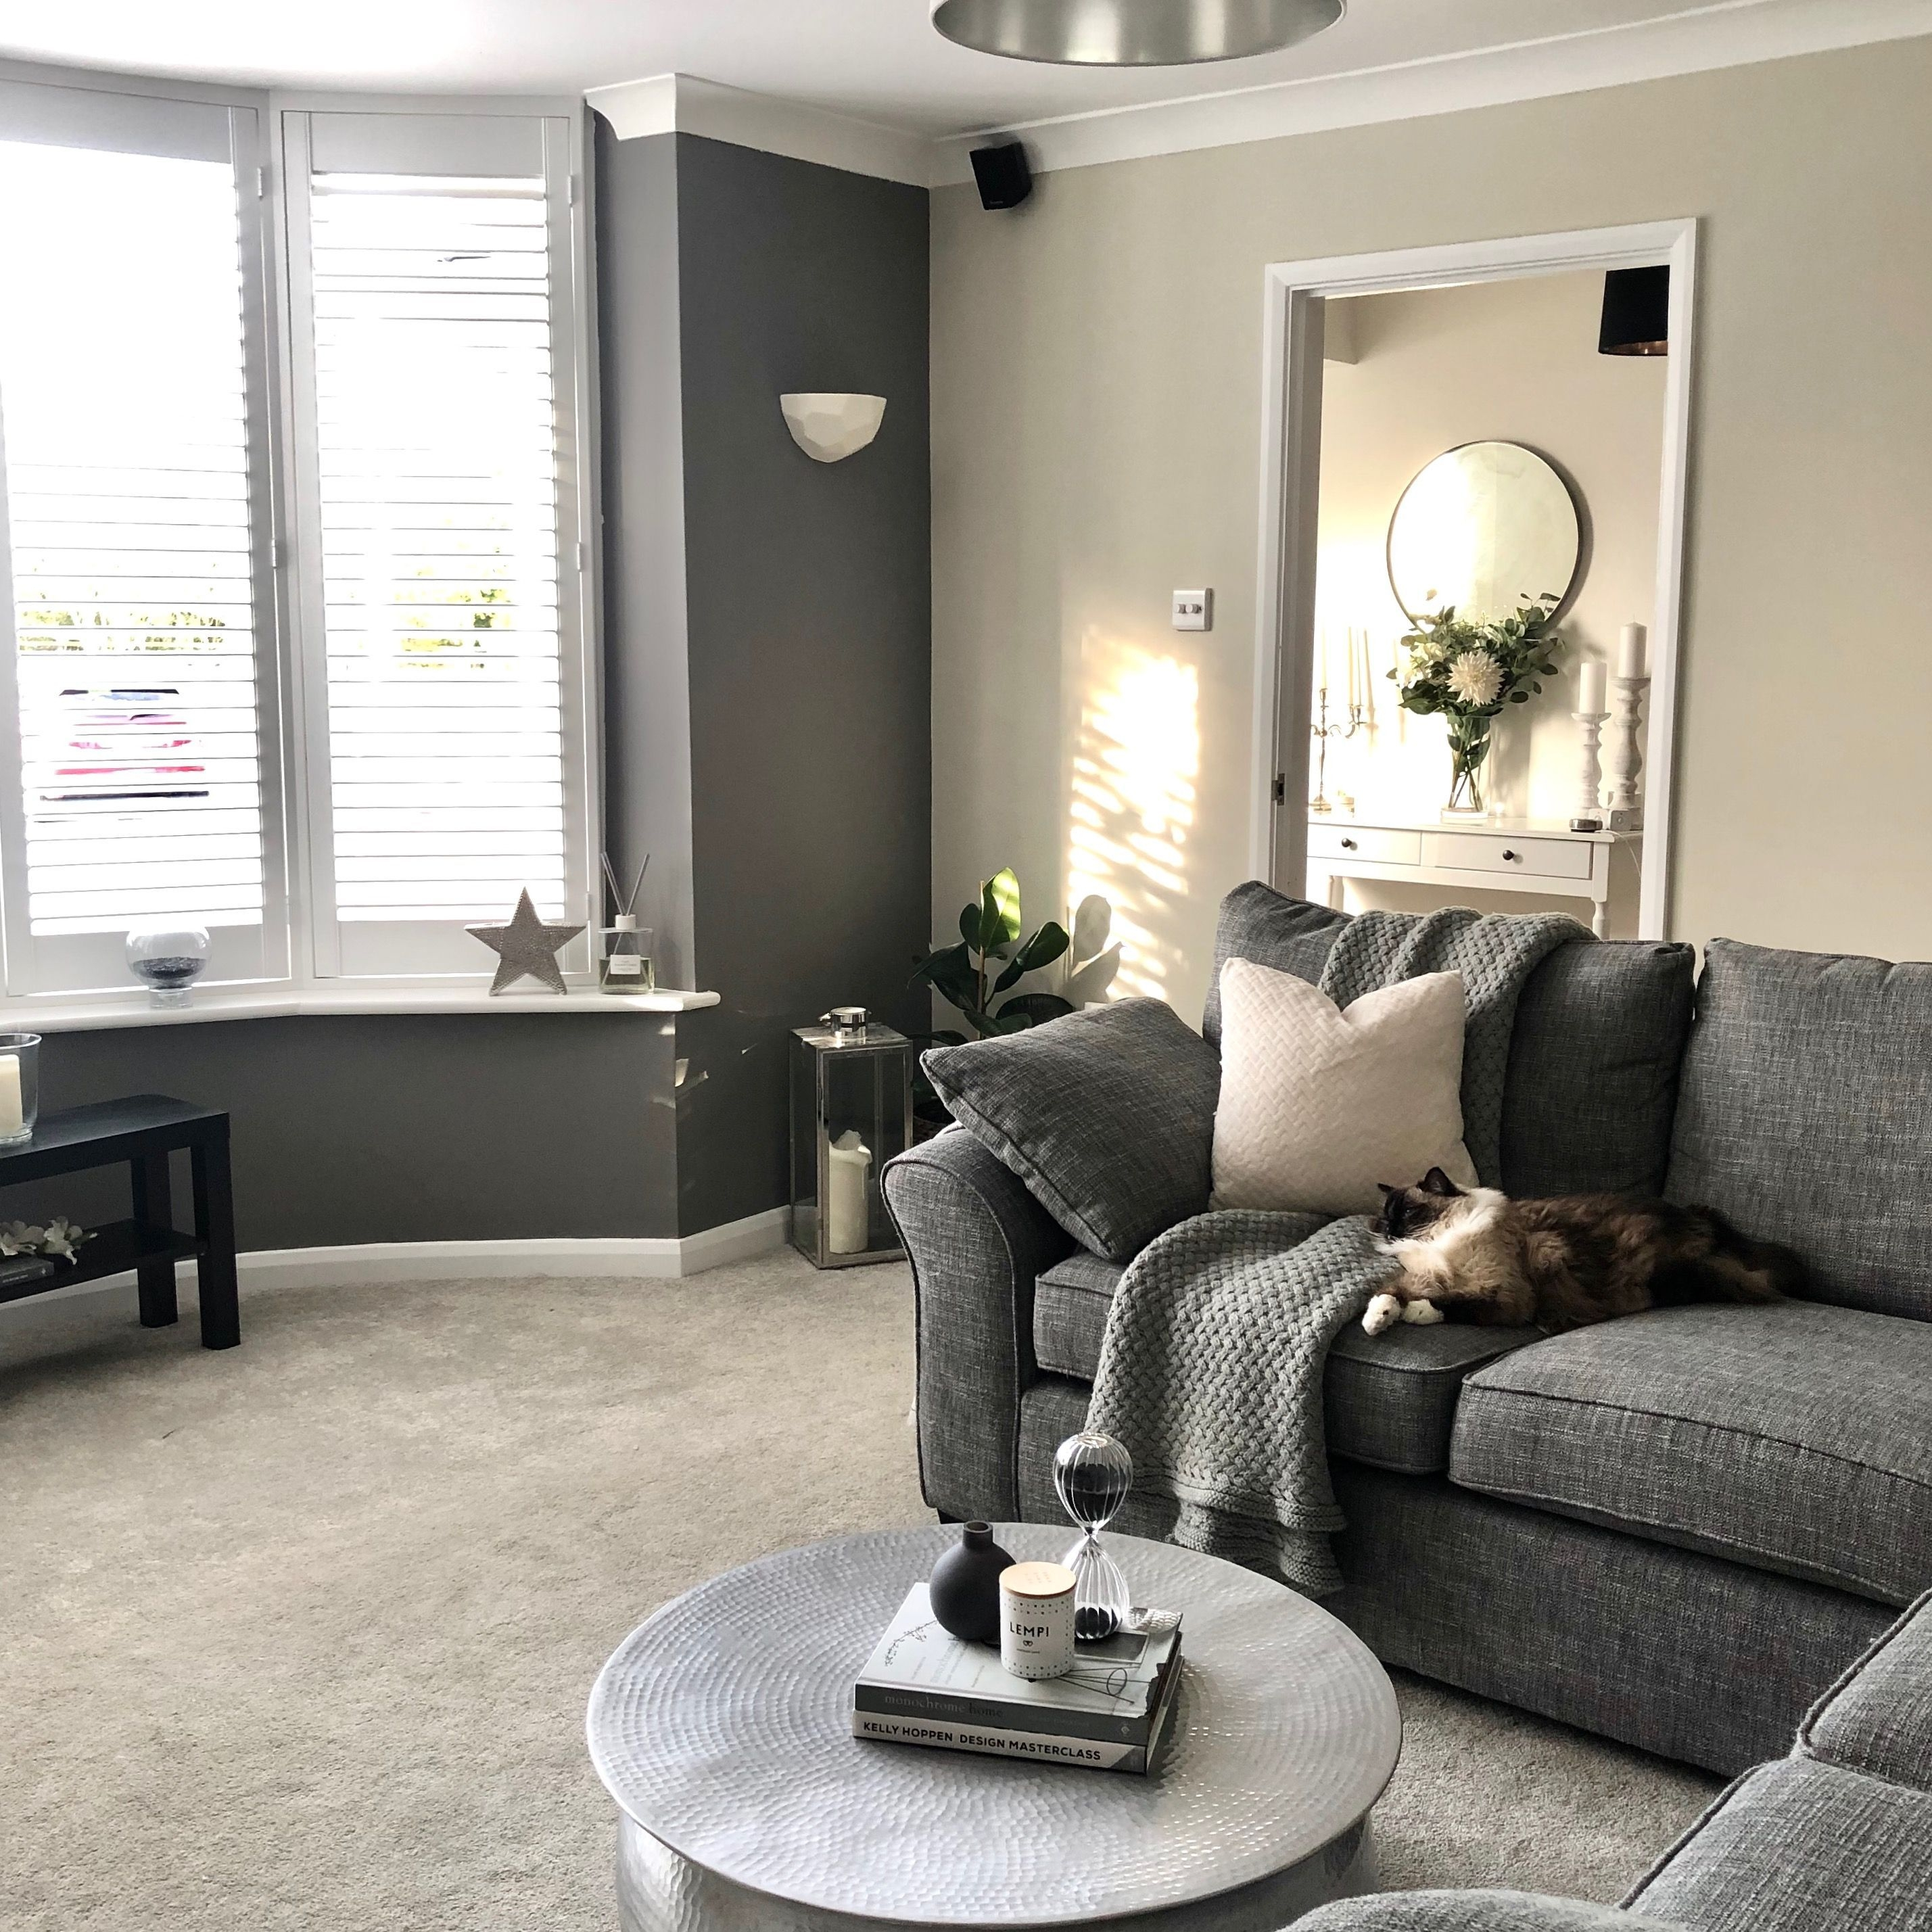 My Newly Redecorated Living Room With A Dark Grey Farrow And Ball Feature Wall In Colour M